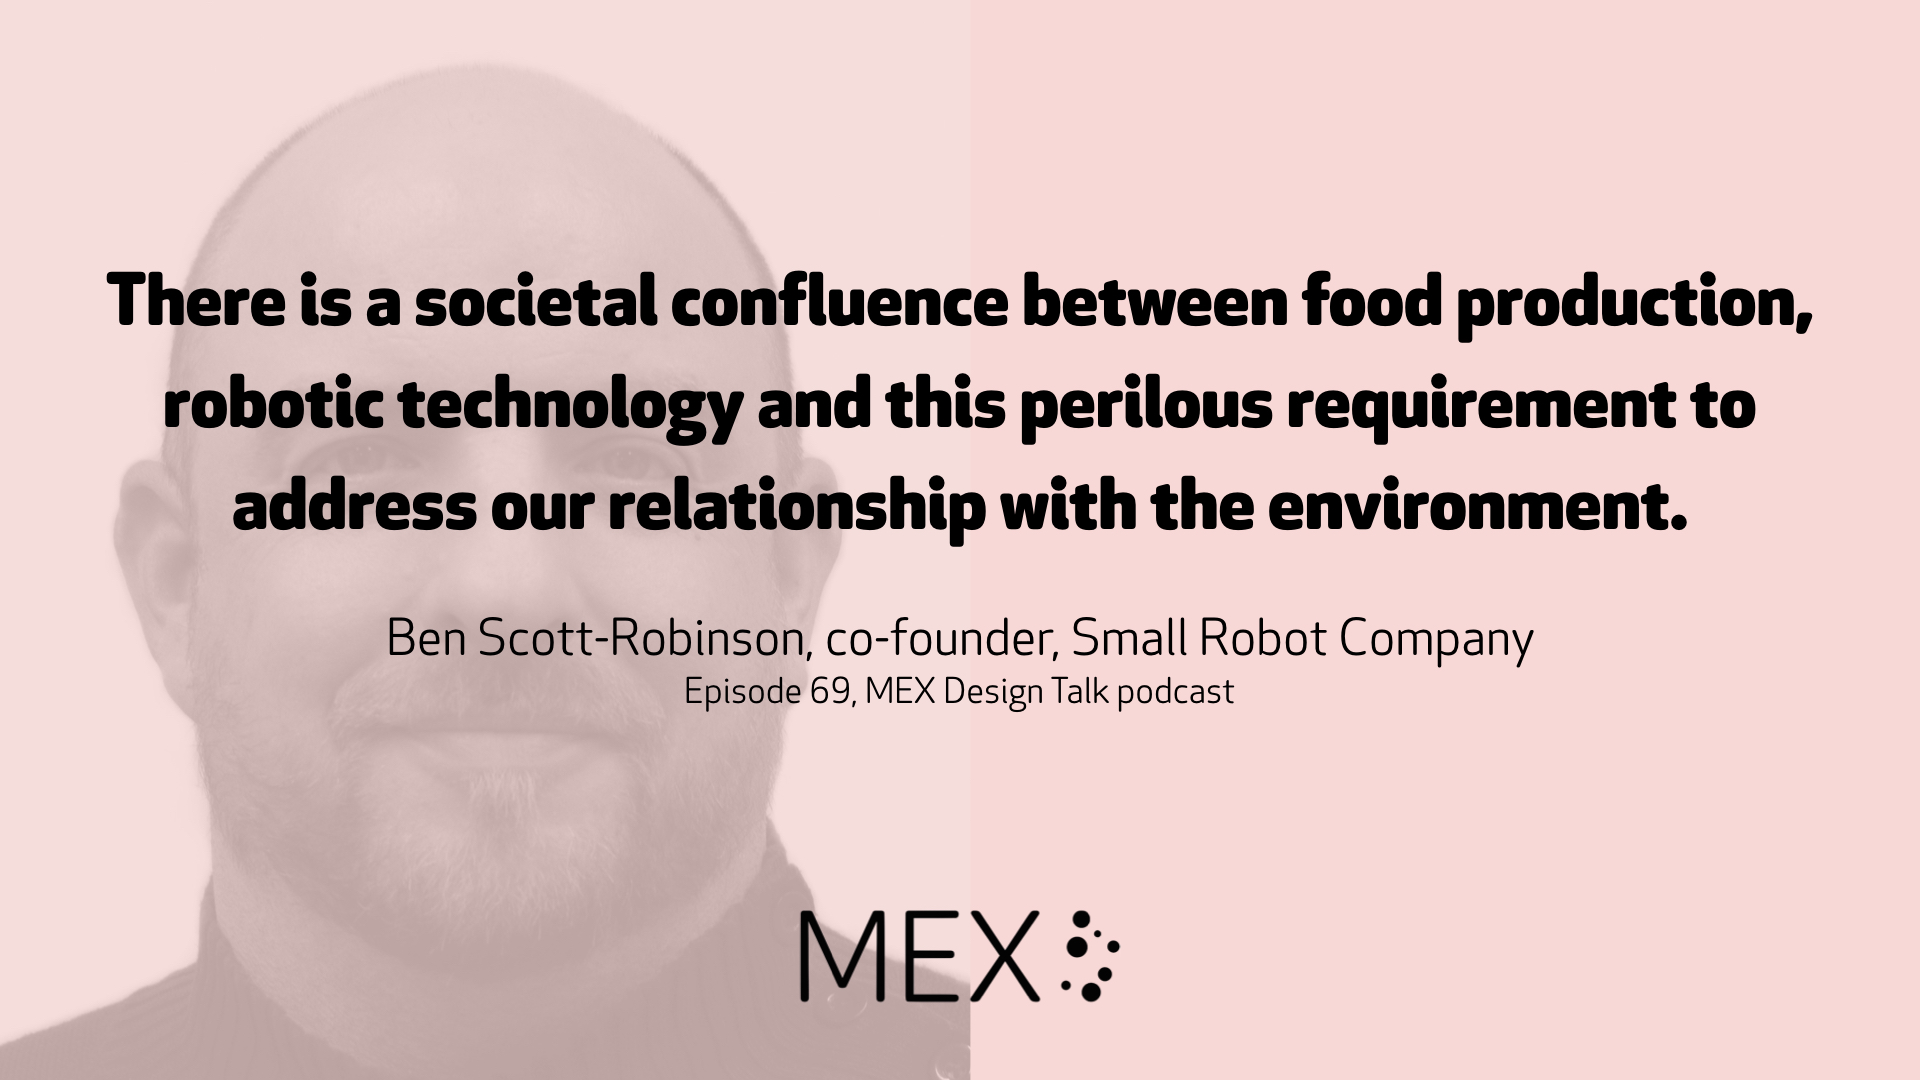 There is a societal confluence between food production, robotic technology and this perilous requirement to address our relationship with the environment. Ben Scott-Robinson, co-founder, Small Robot Company Episode 69, MEX Design Talk podcast